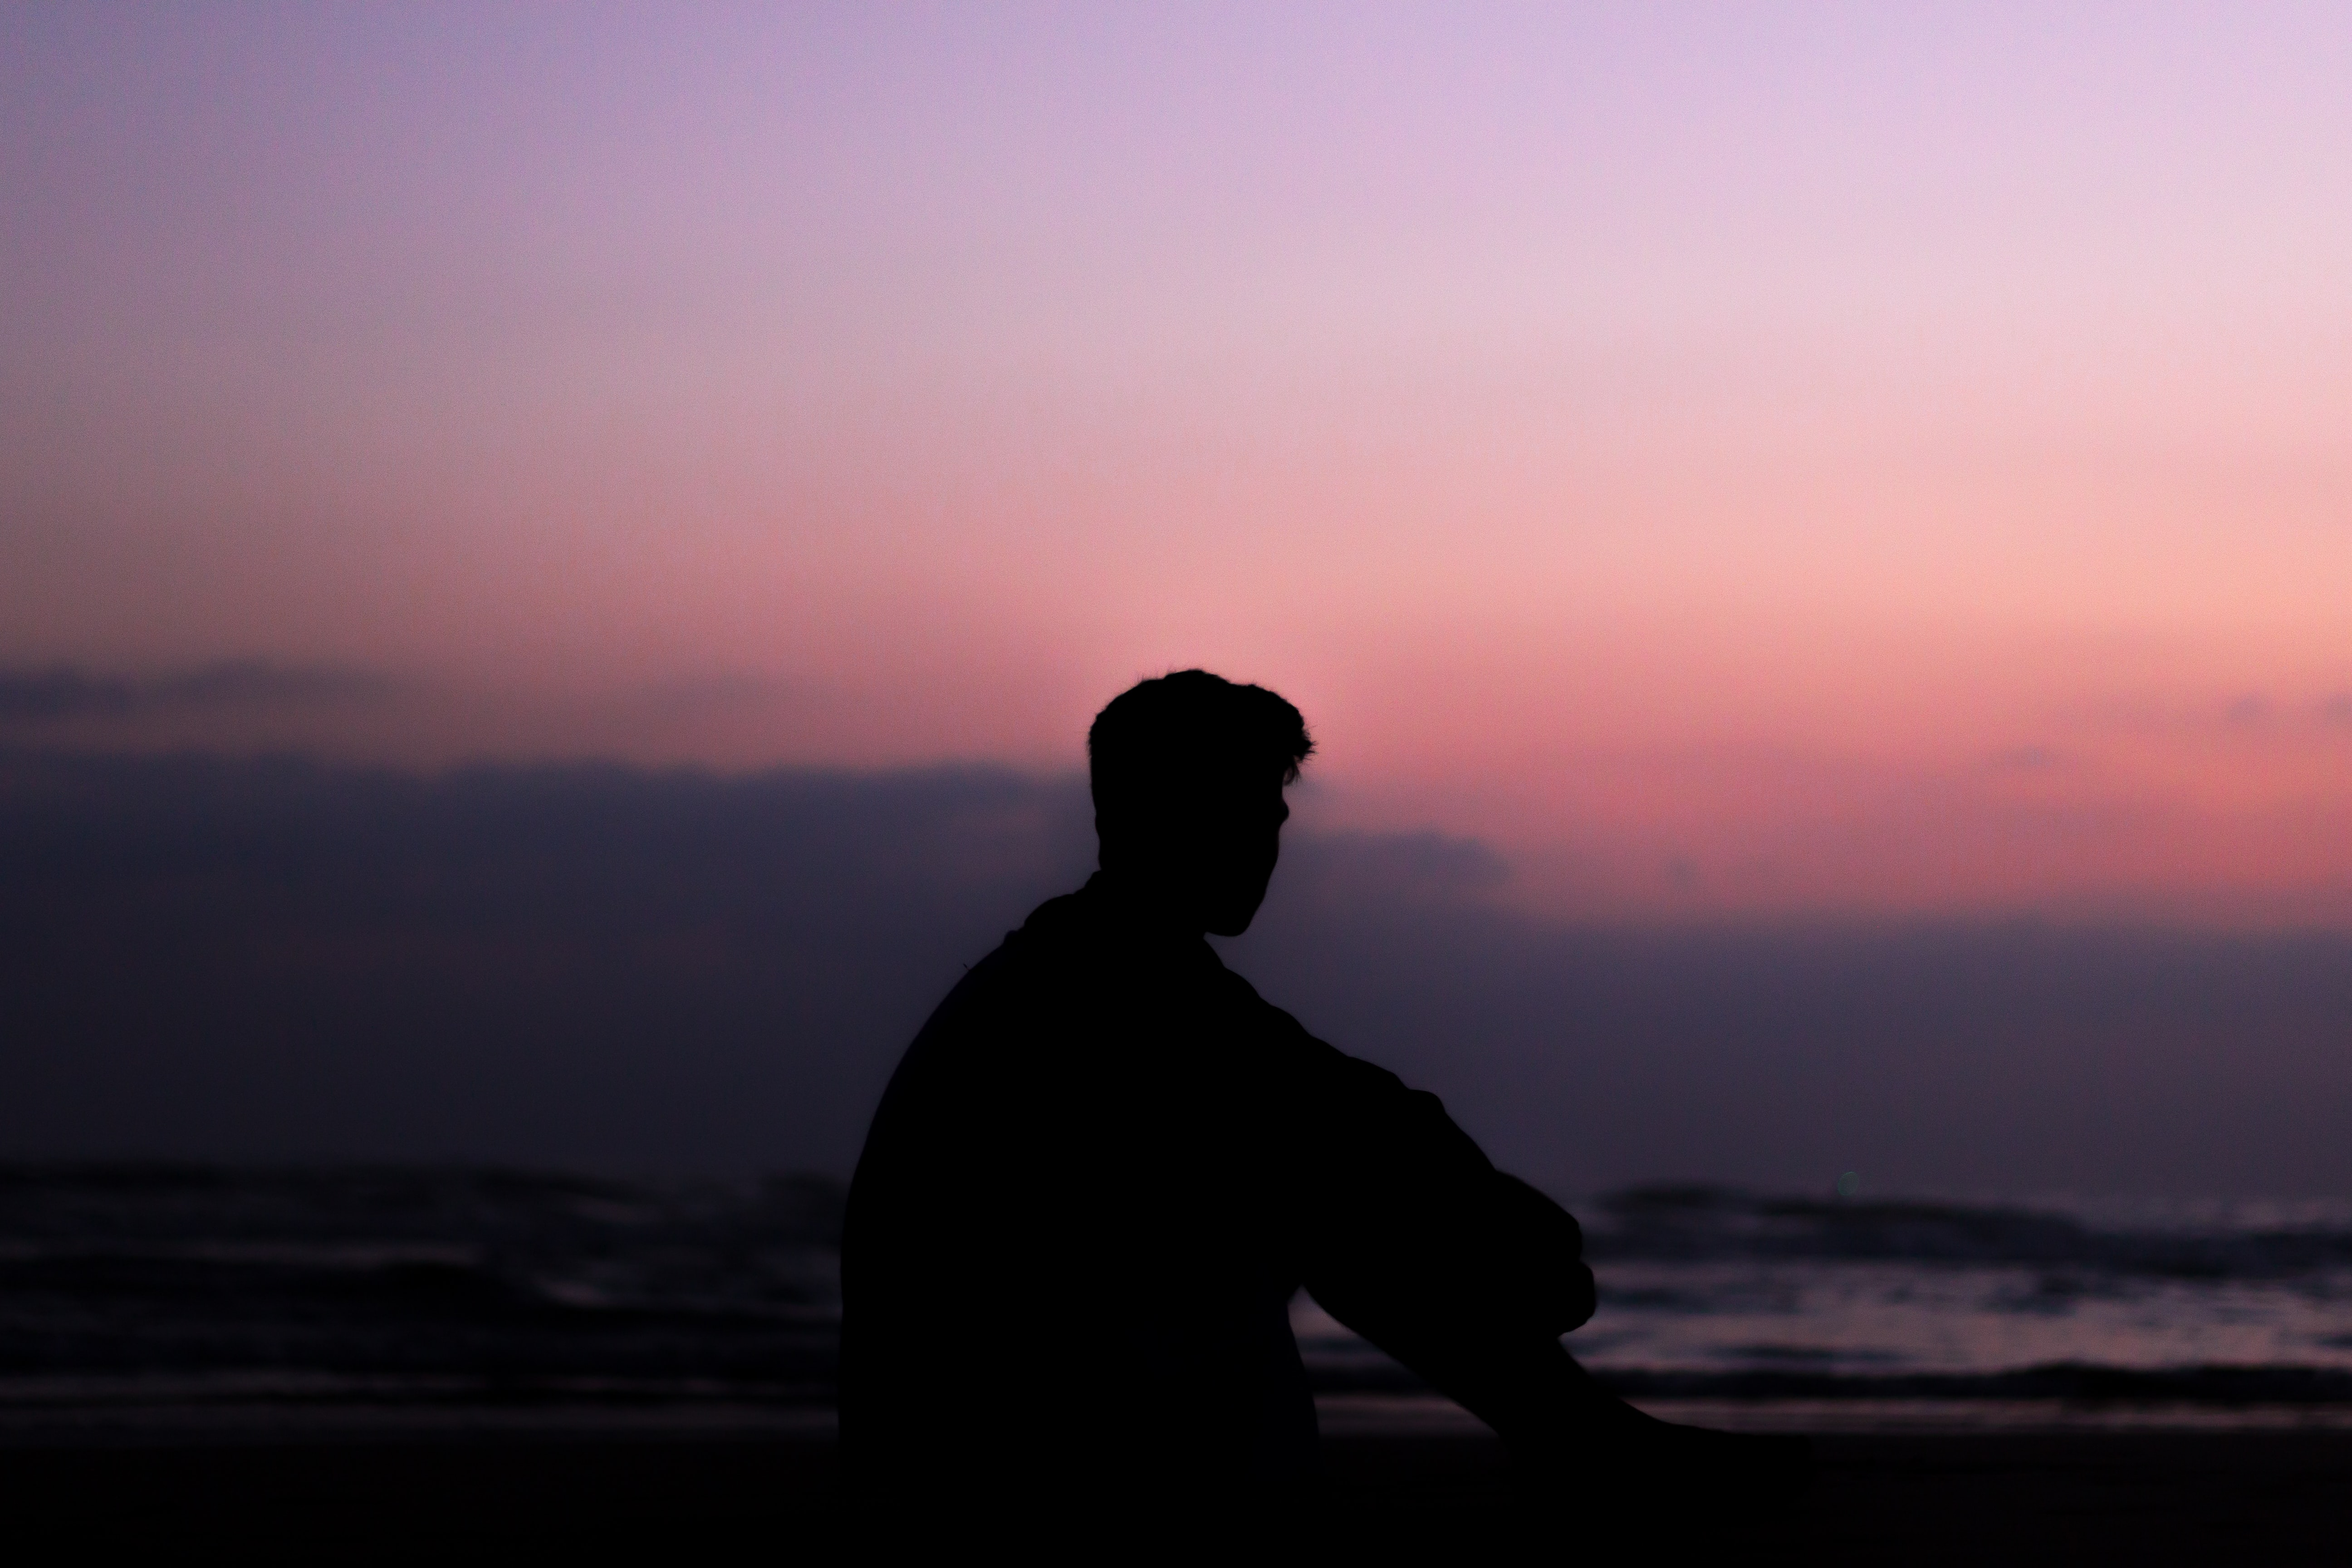 silhoutte of man sitting on ground